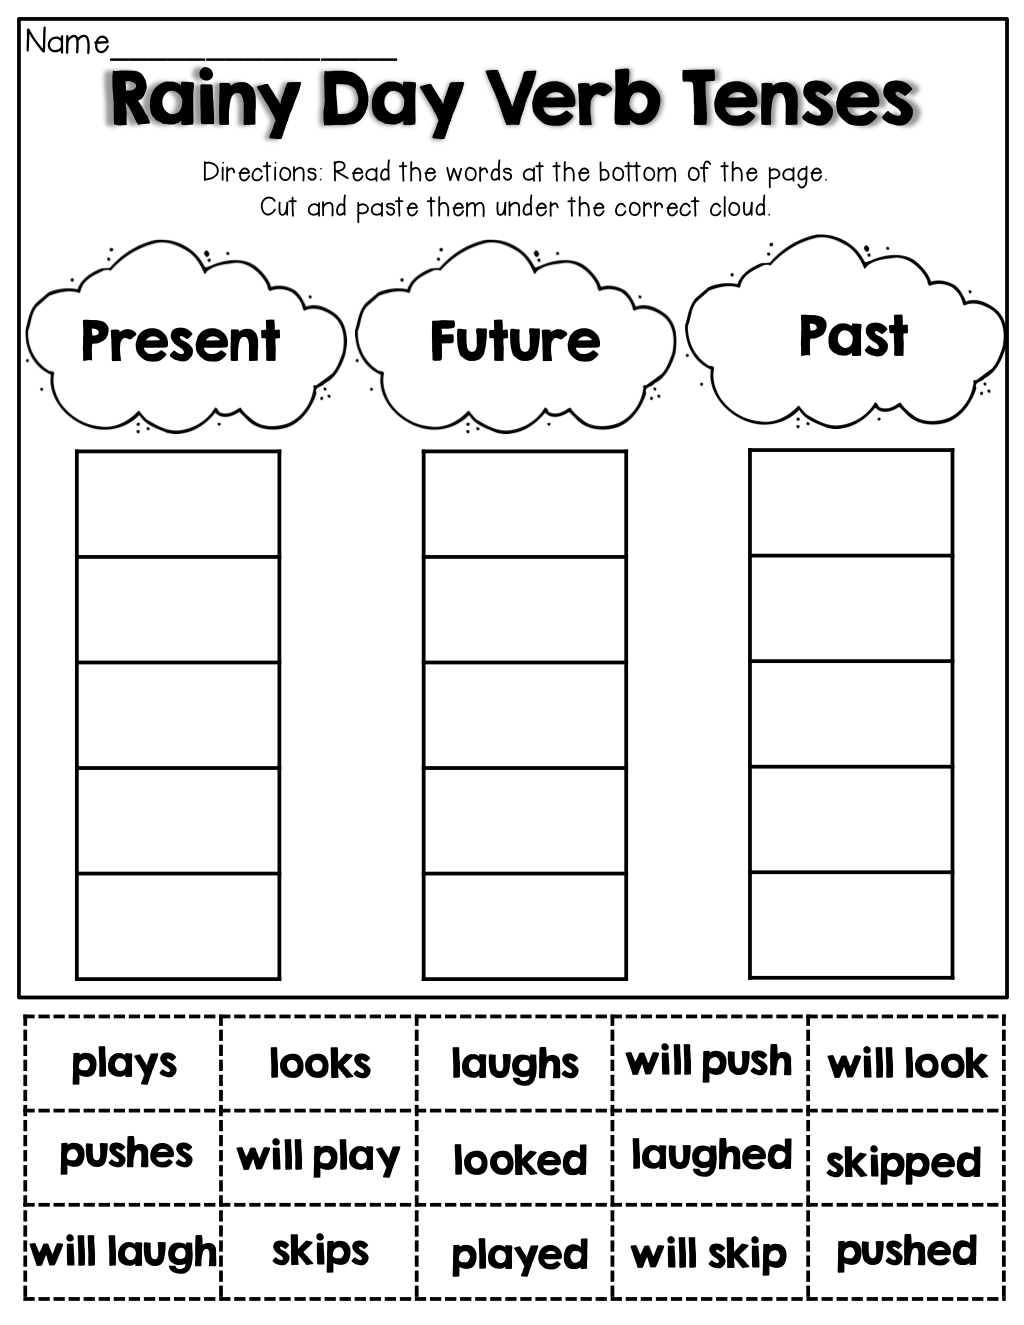 Worksheets Cut And Paste Worksheets For 2nd Grade verb tenses cut and paste 1st grade activities pinterest paste